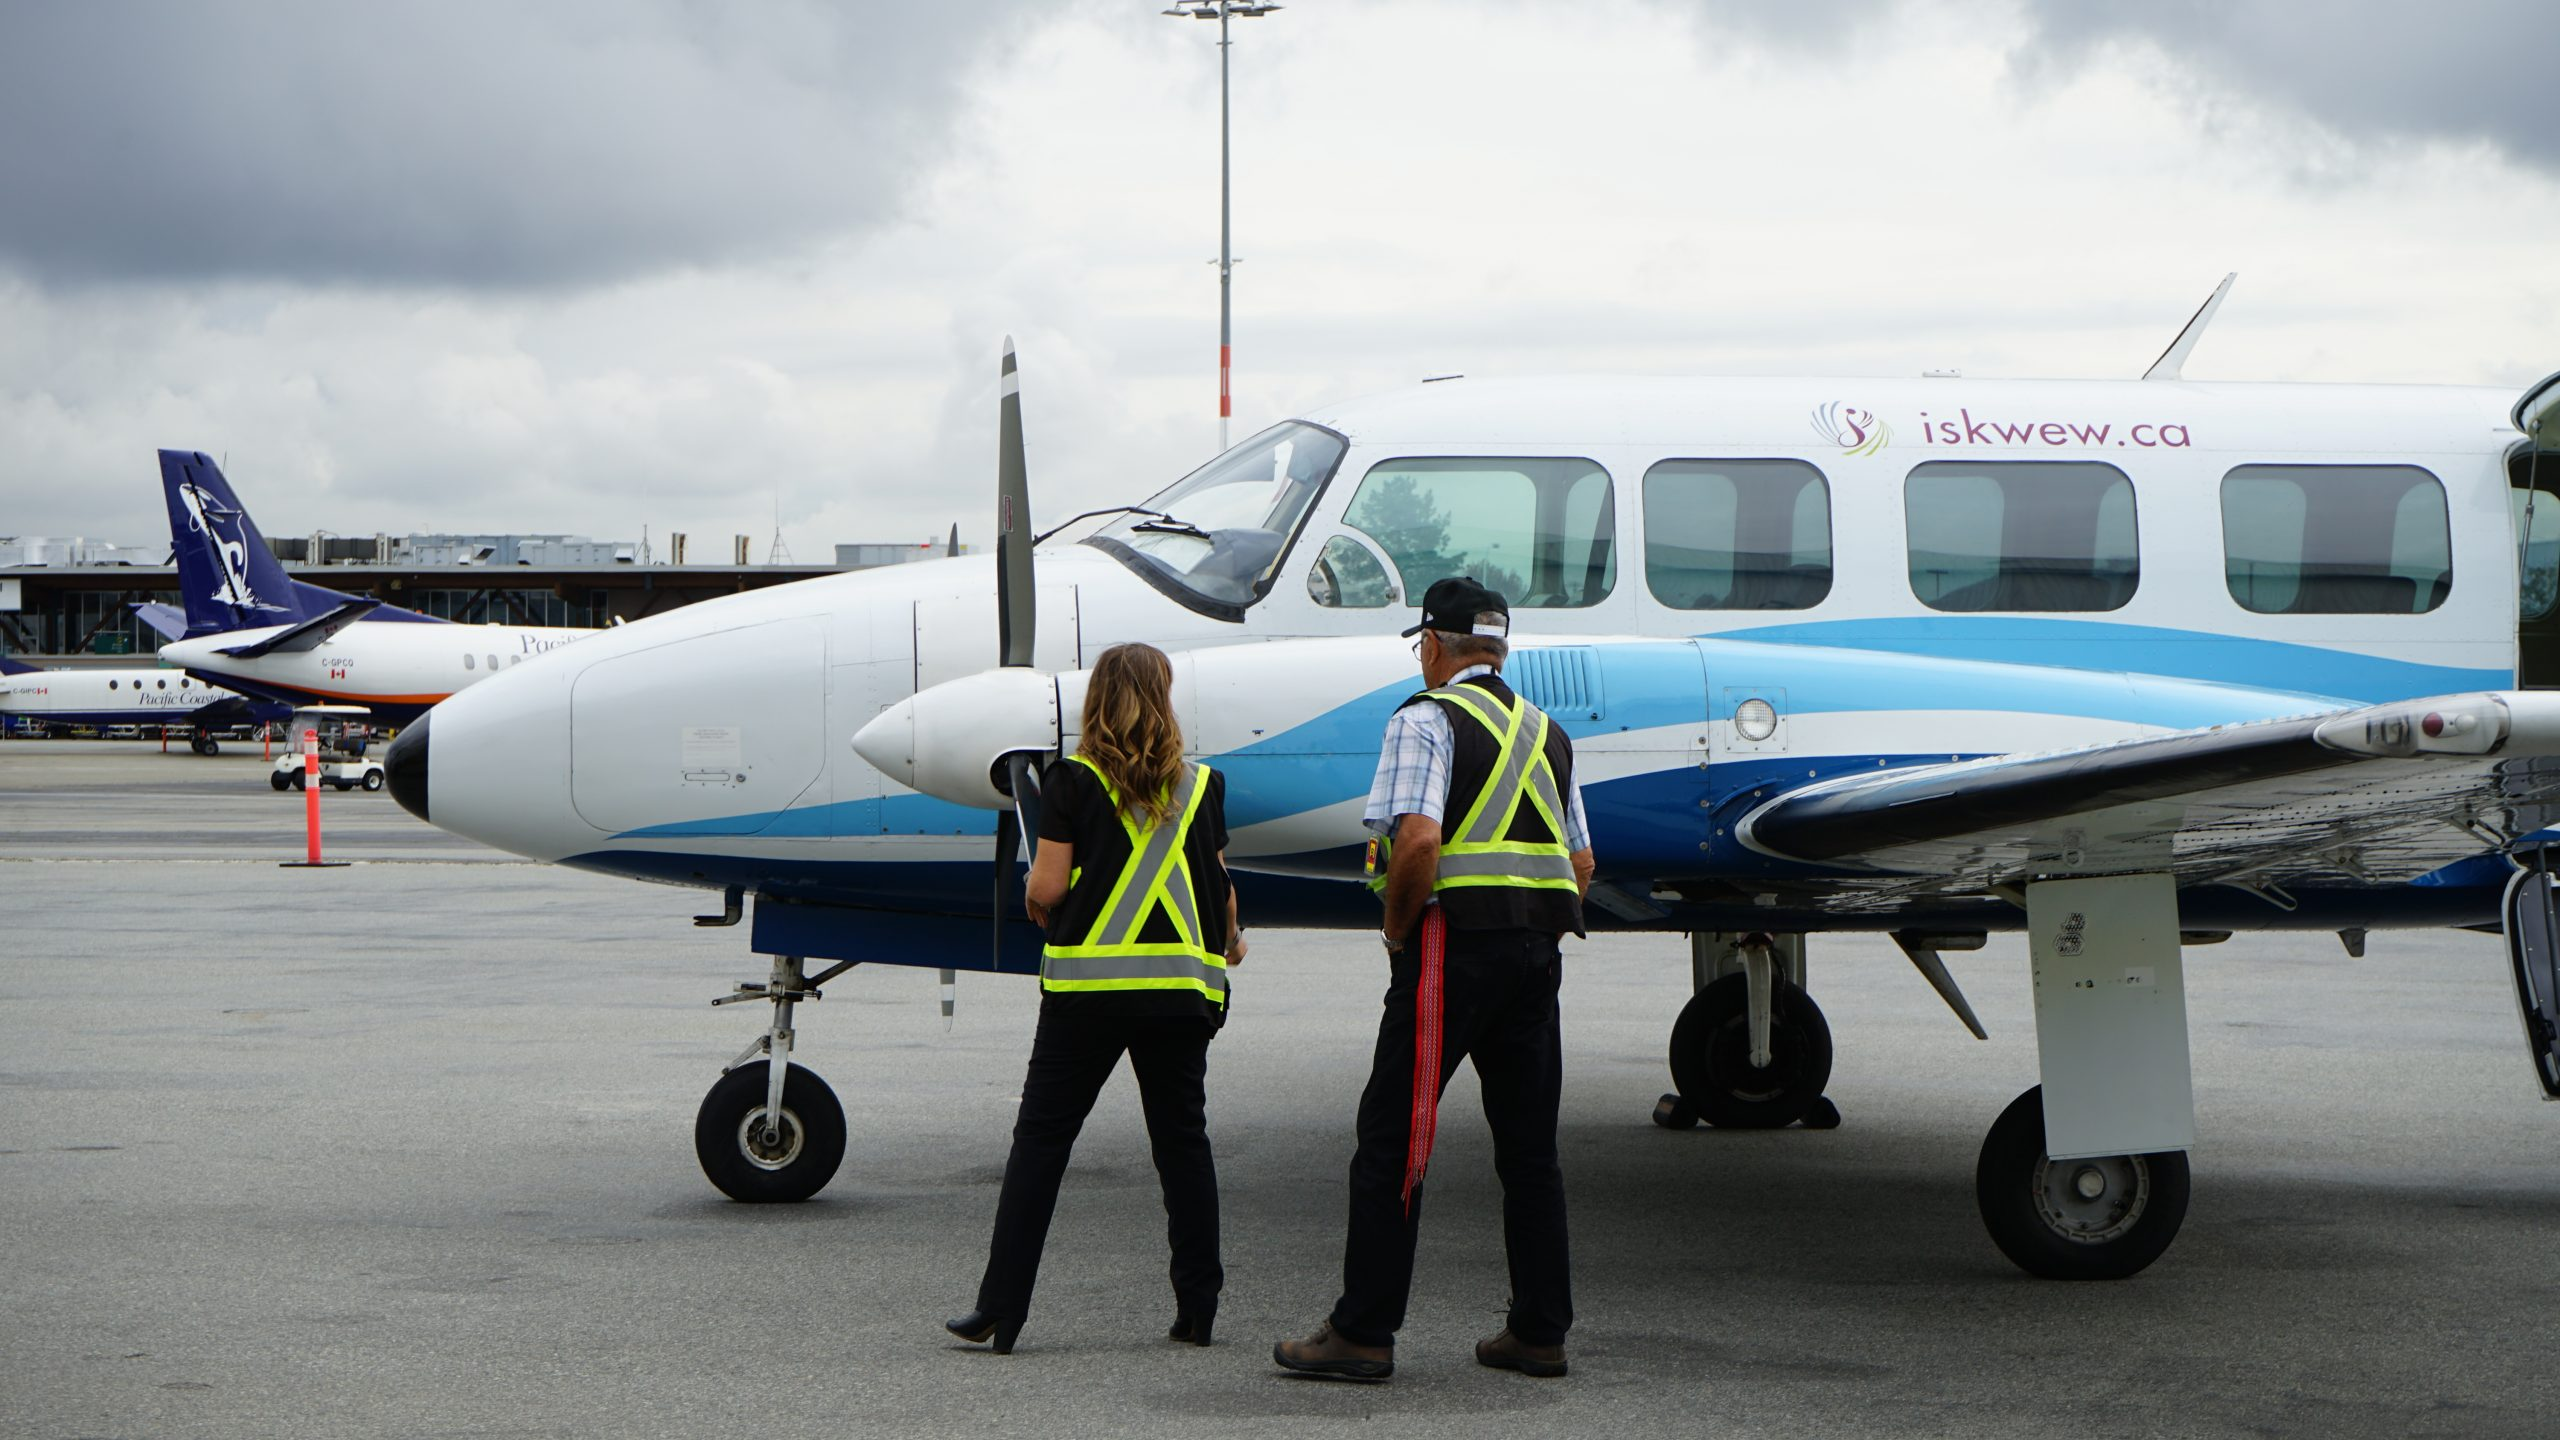 Pilot With Family in Fort Chipewyan Launches First Indigenous Airline